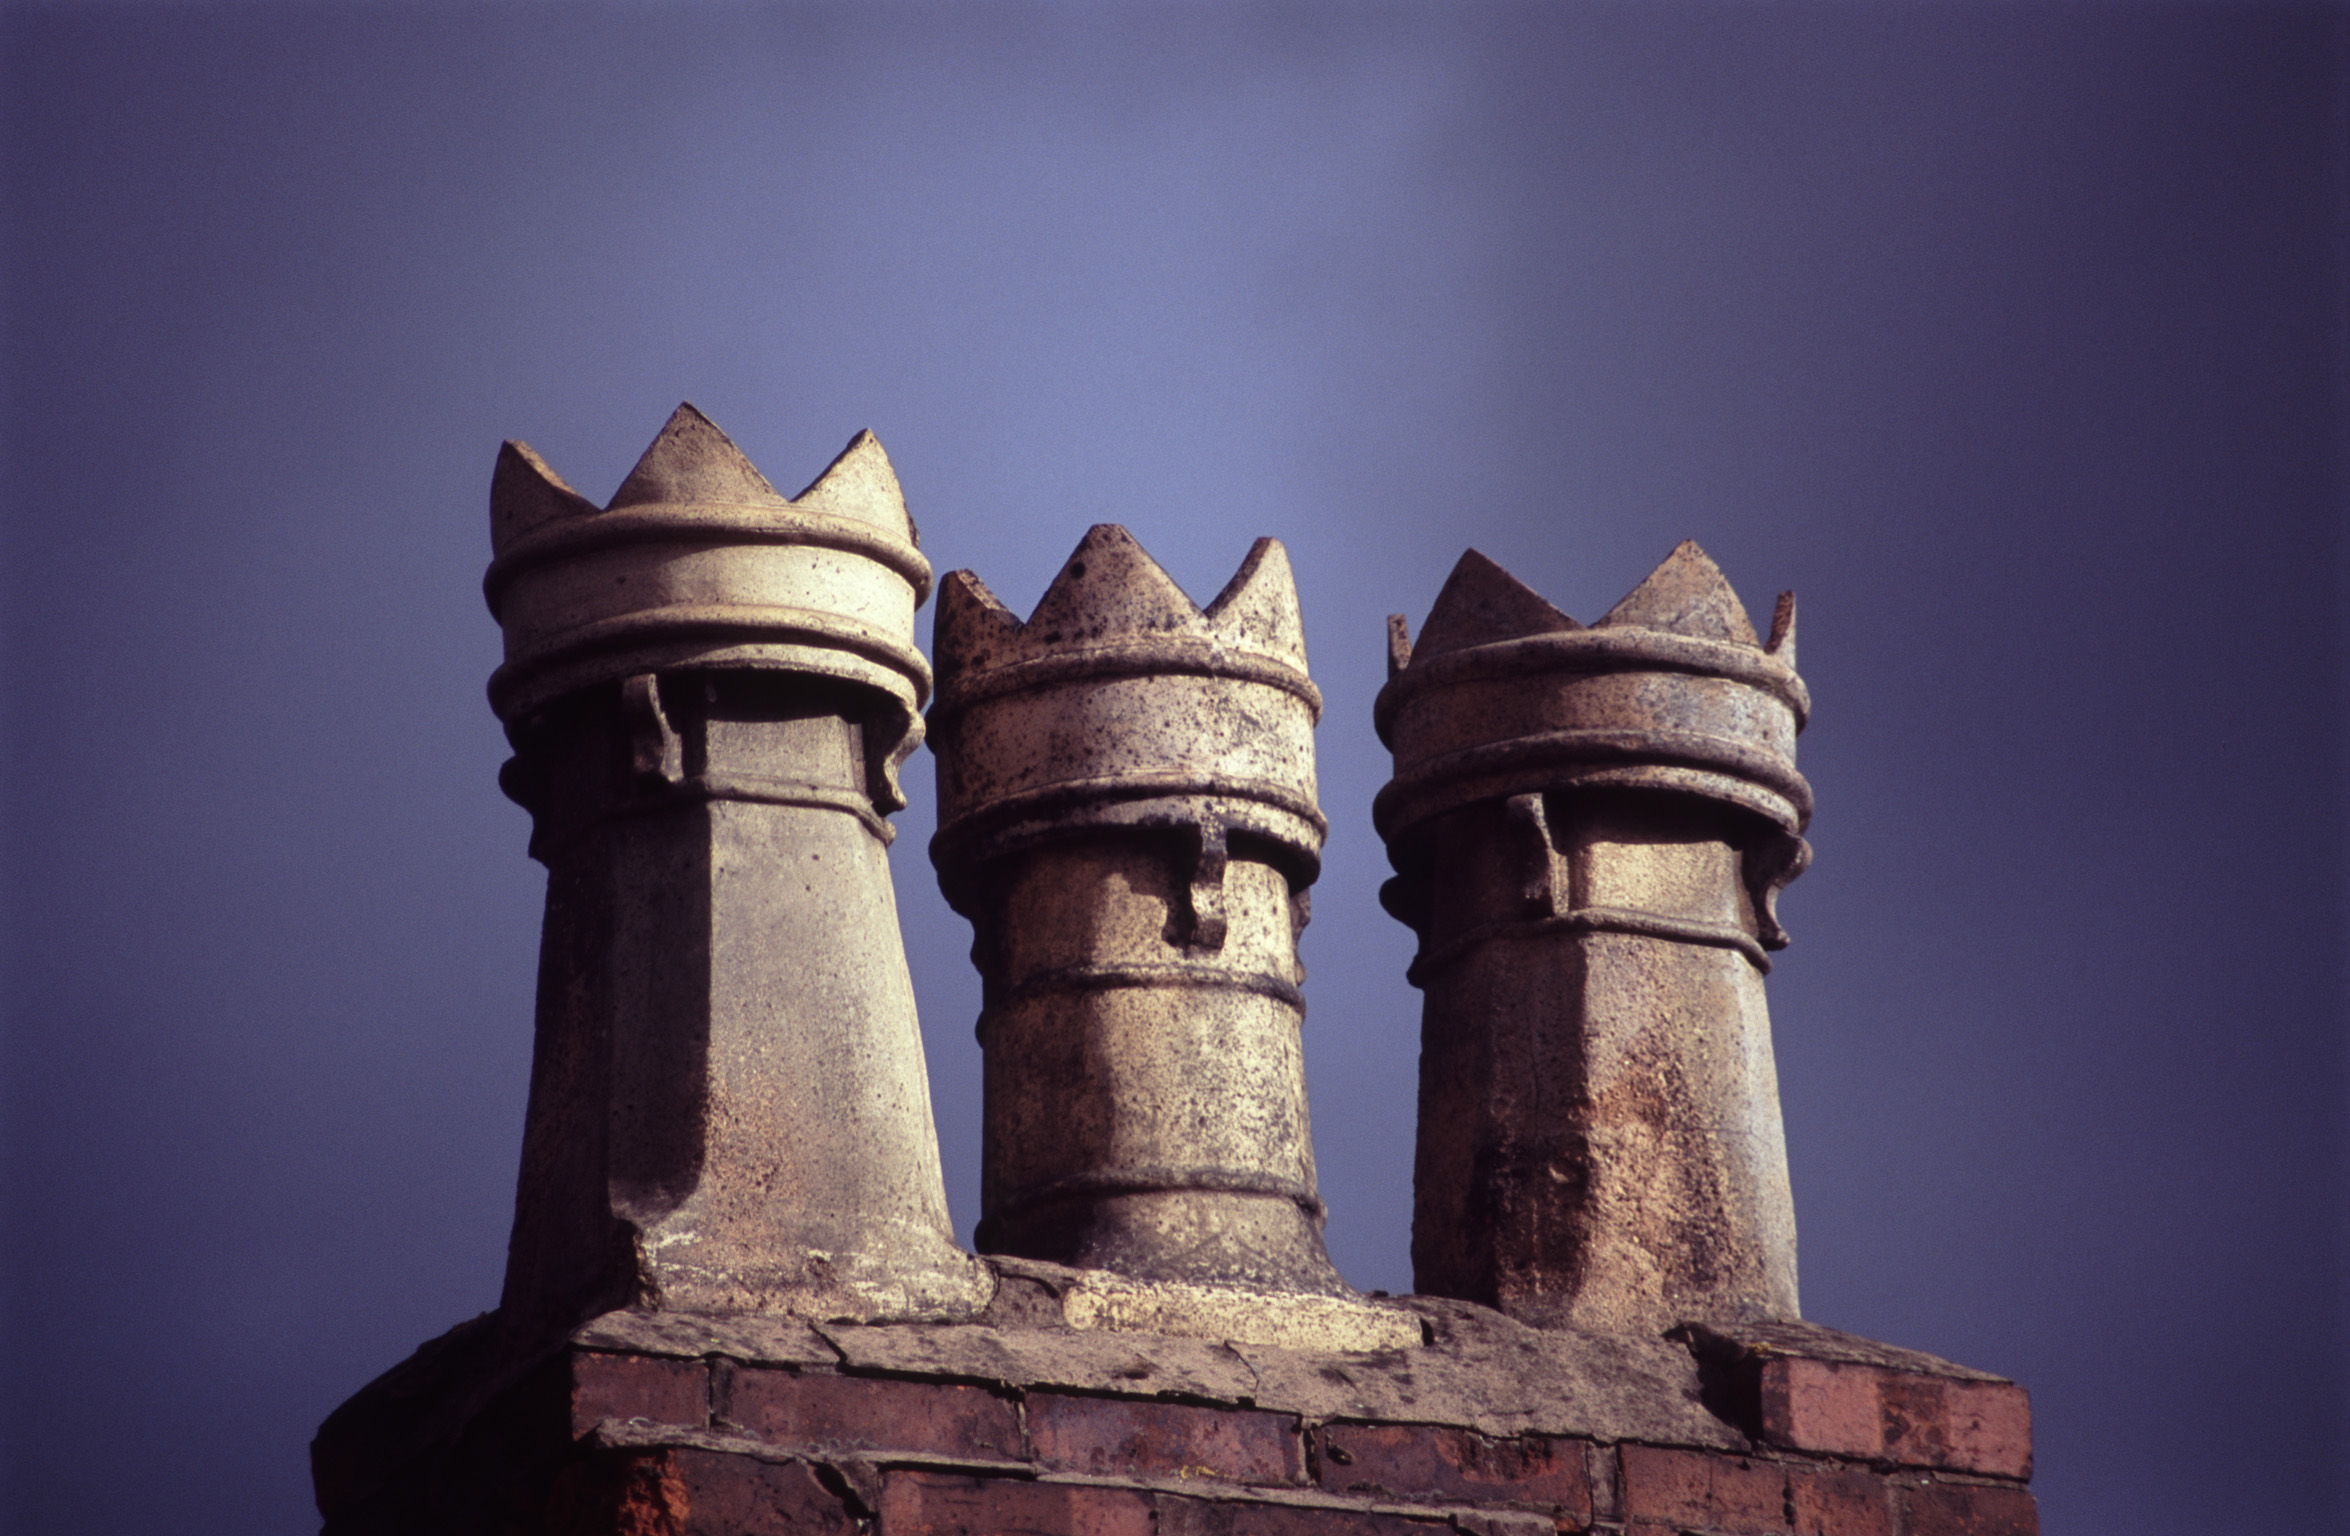 Row of chimney pots in Stockport on a rooftop, close up against a dark threatening stormy sky